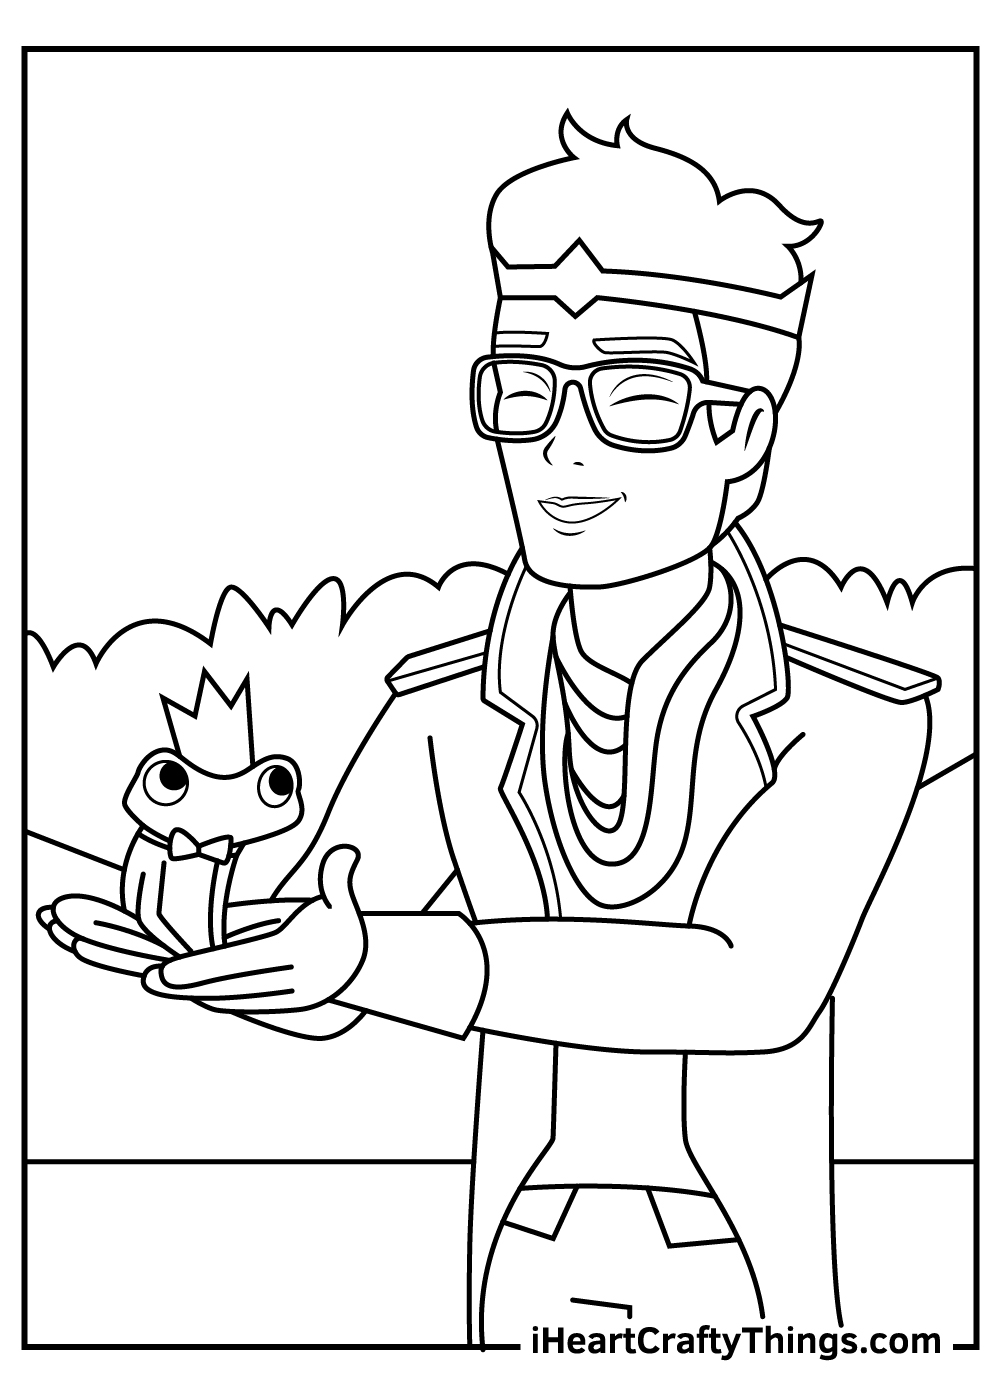 dexter charming ever after high coloring pages